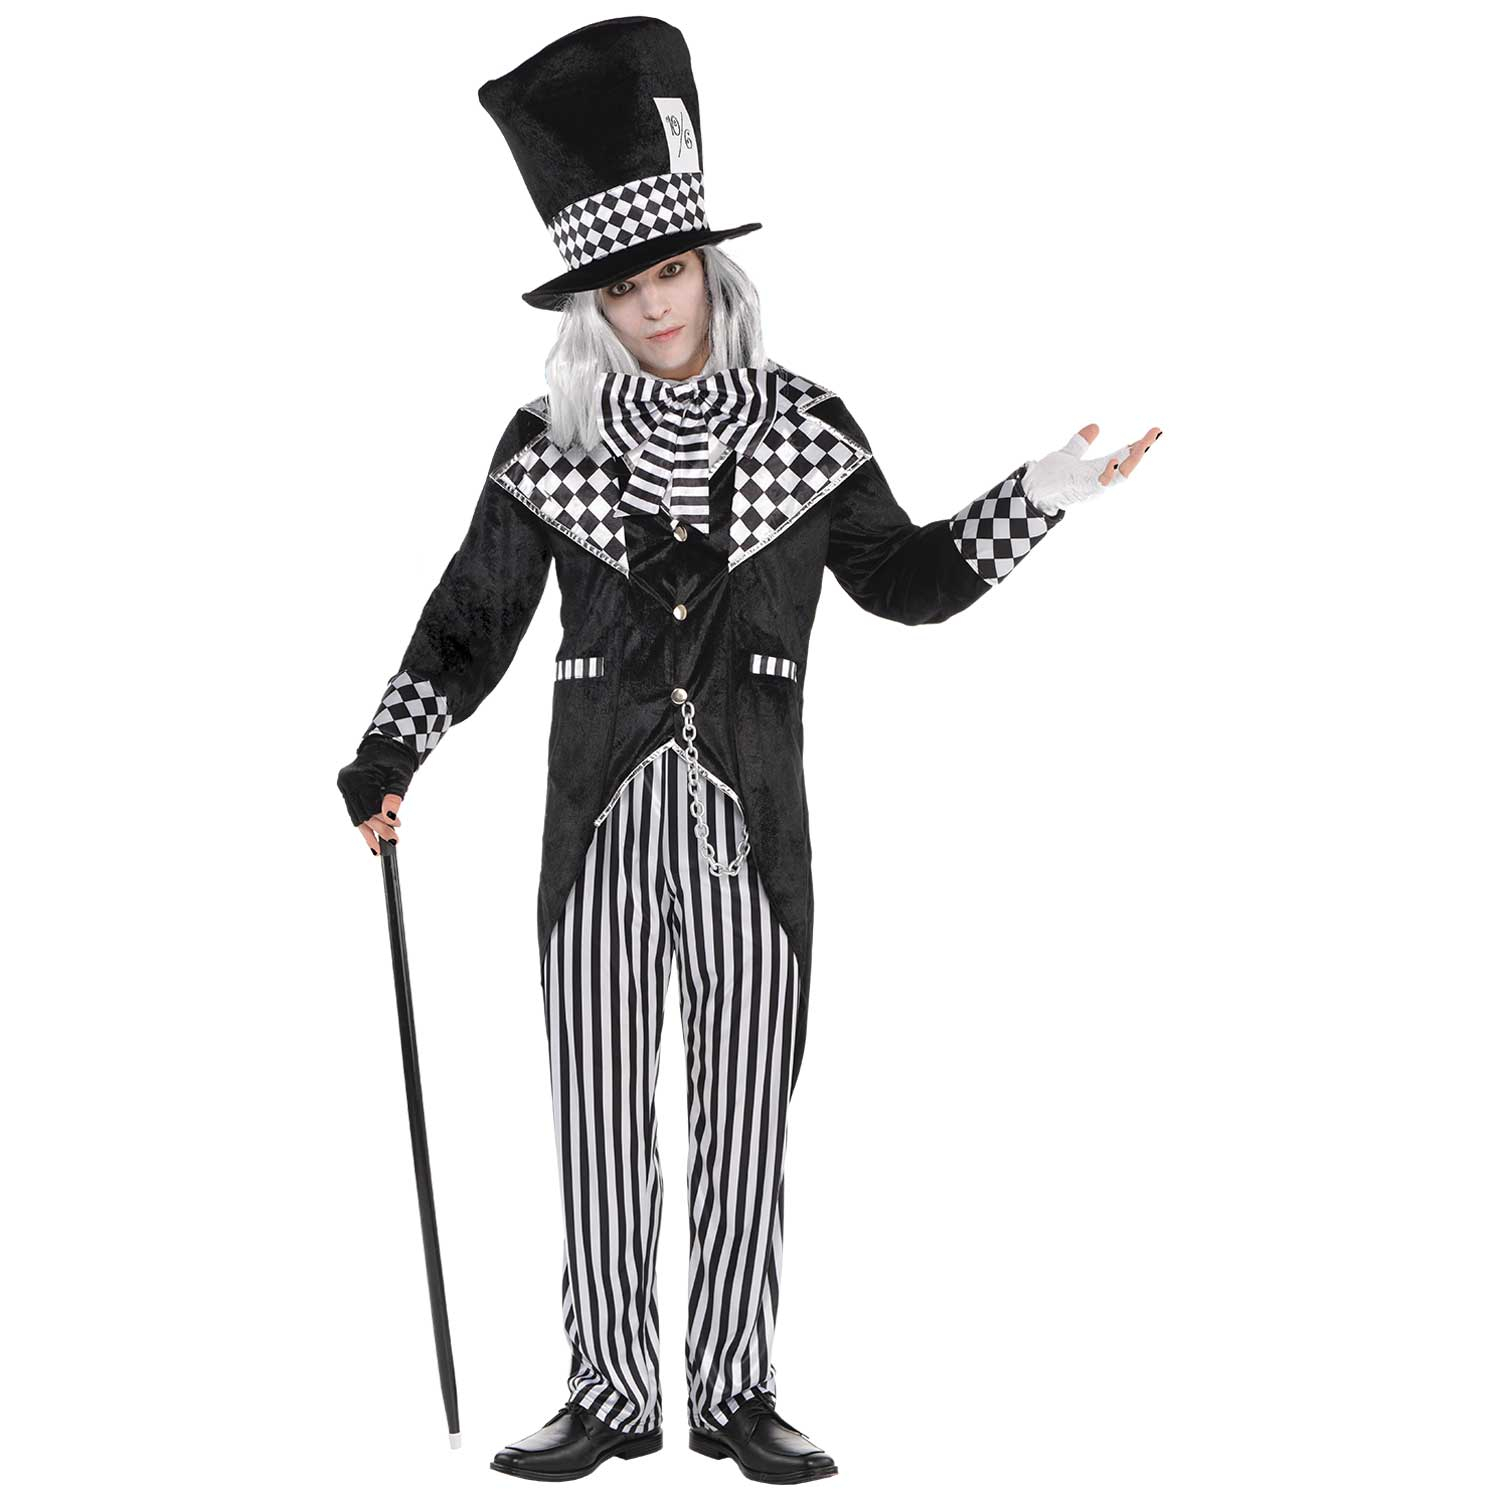 23a18f61feb Totally Mad Hatter Costume - Size Standard - 1 PC : Amscan International